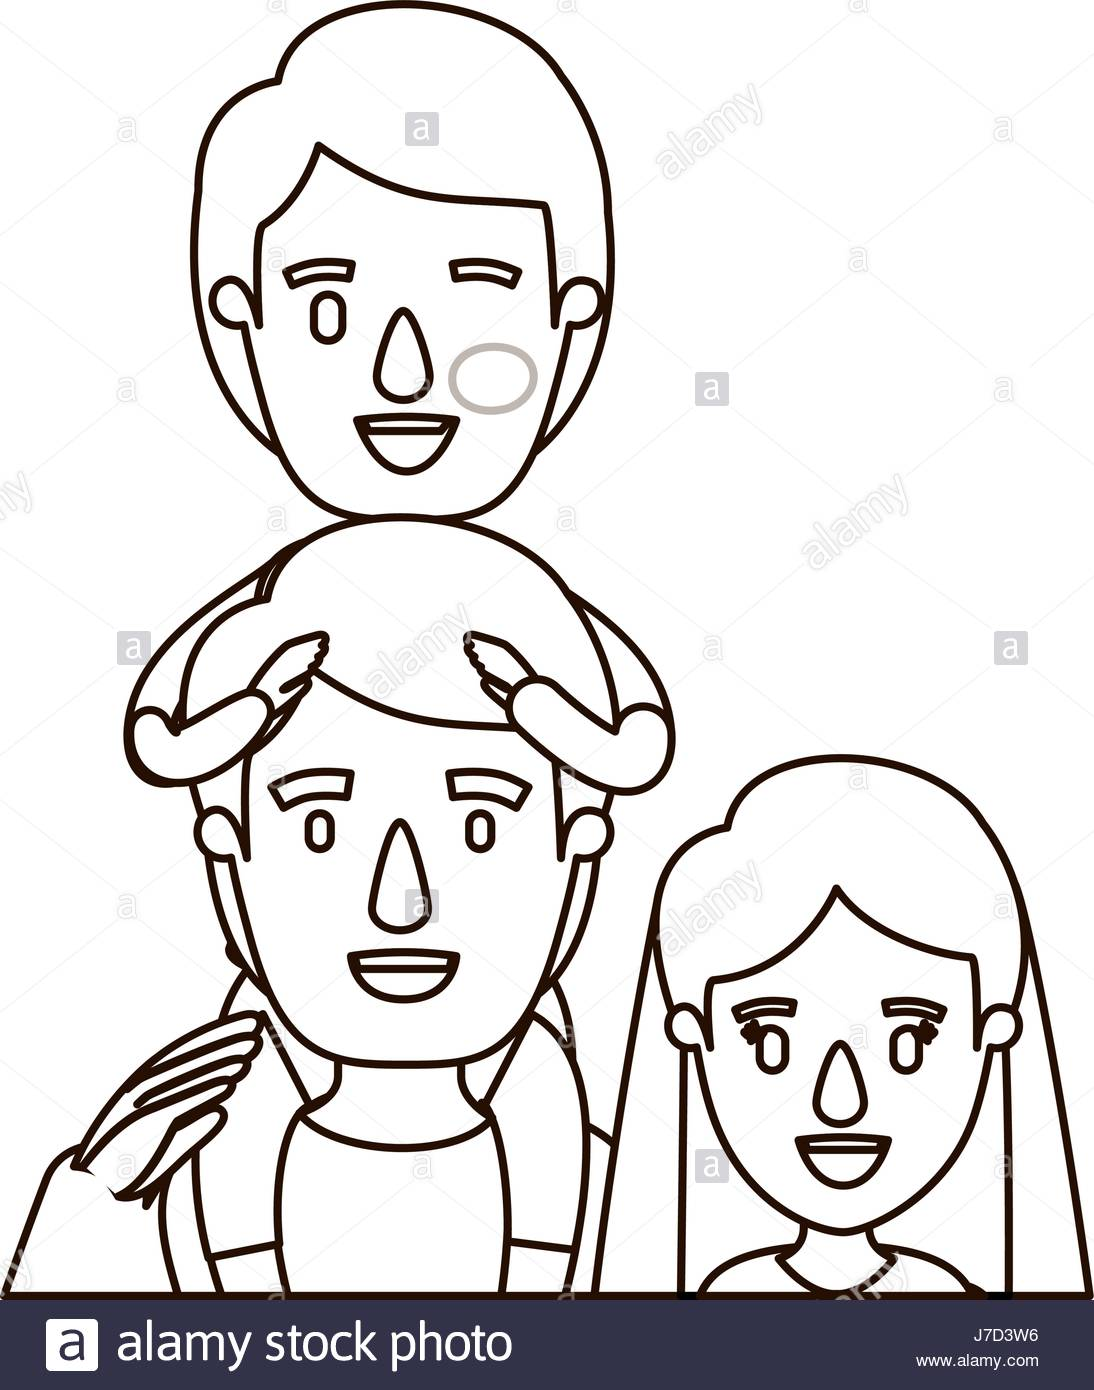 1094x1390 Sketch Contour Caricature Half Body Family Mother And Father